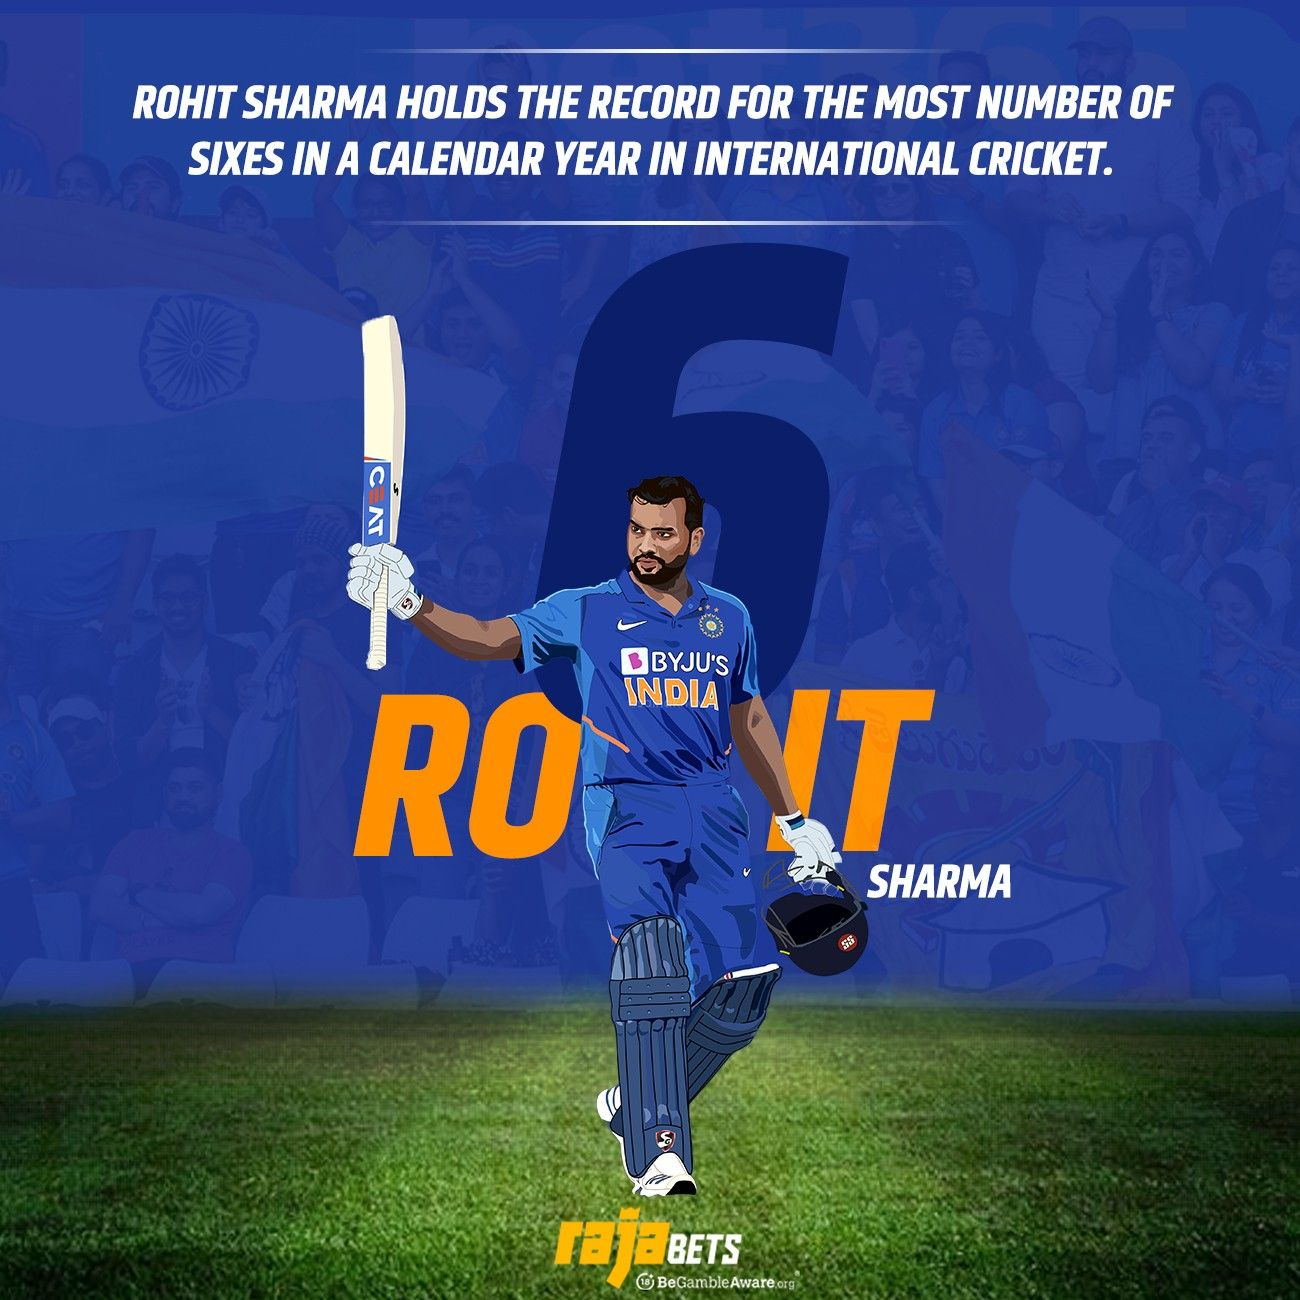 Rohit Sharma is Ro-HIT for a reason 🏏